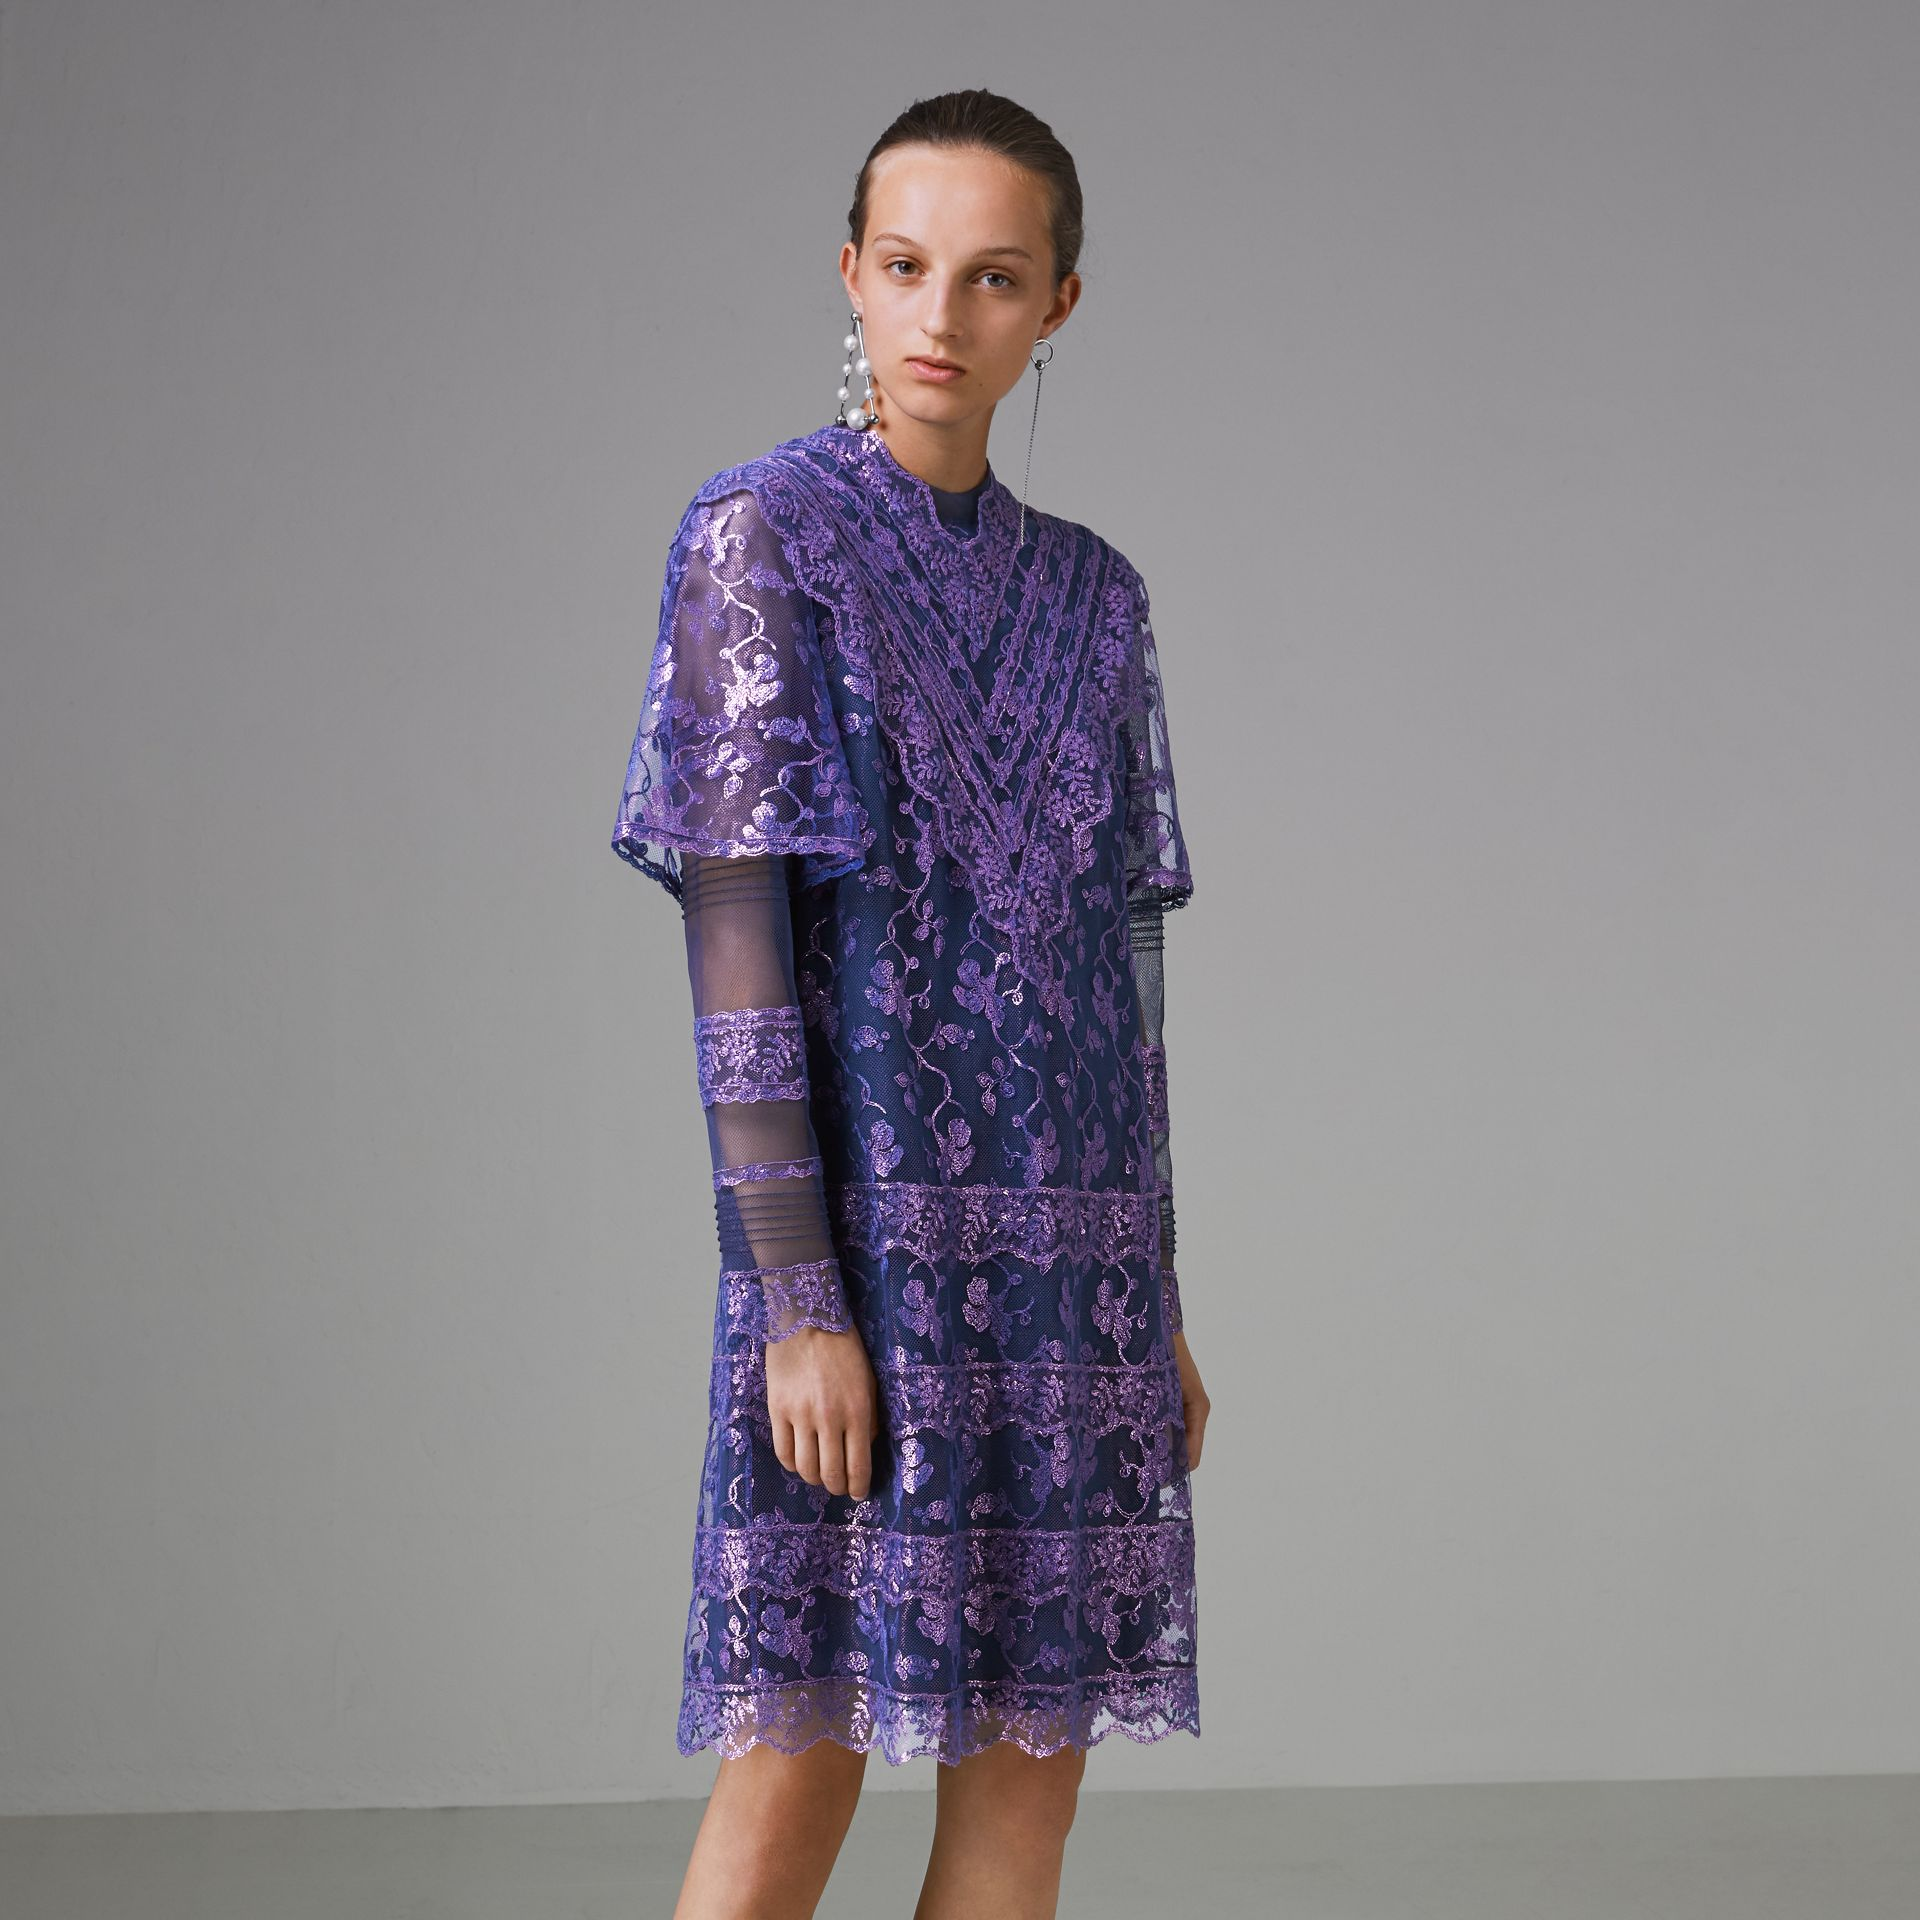 Laminated Lace Cape Sleeve Dress in Bright Purple - Women | Burberry - gallery image 5